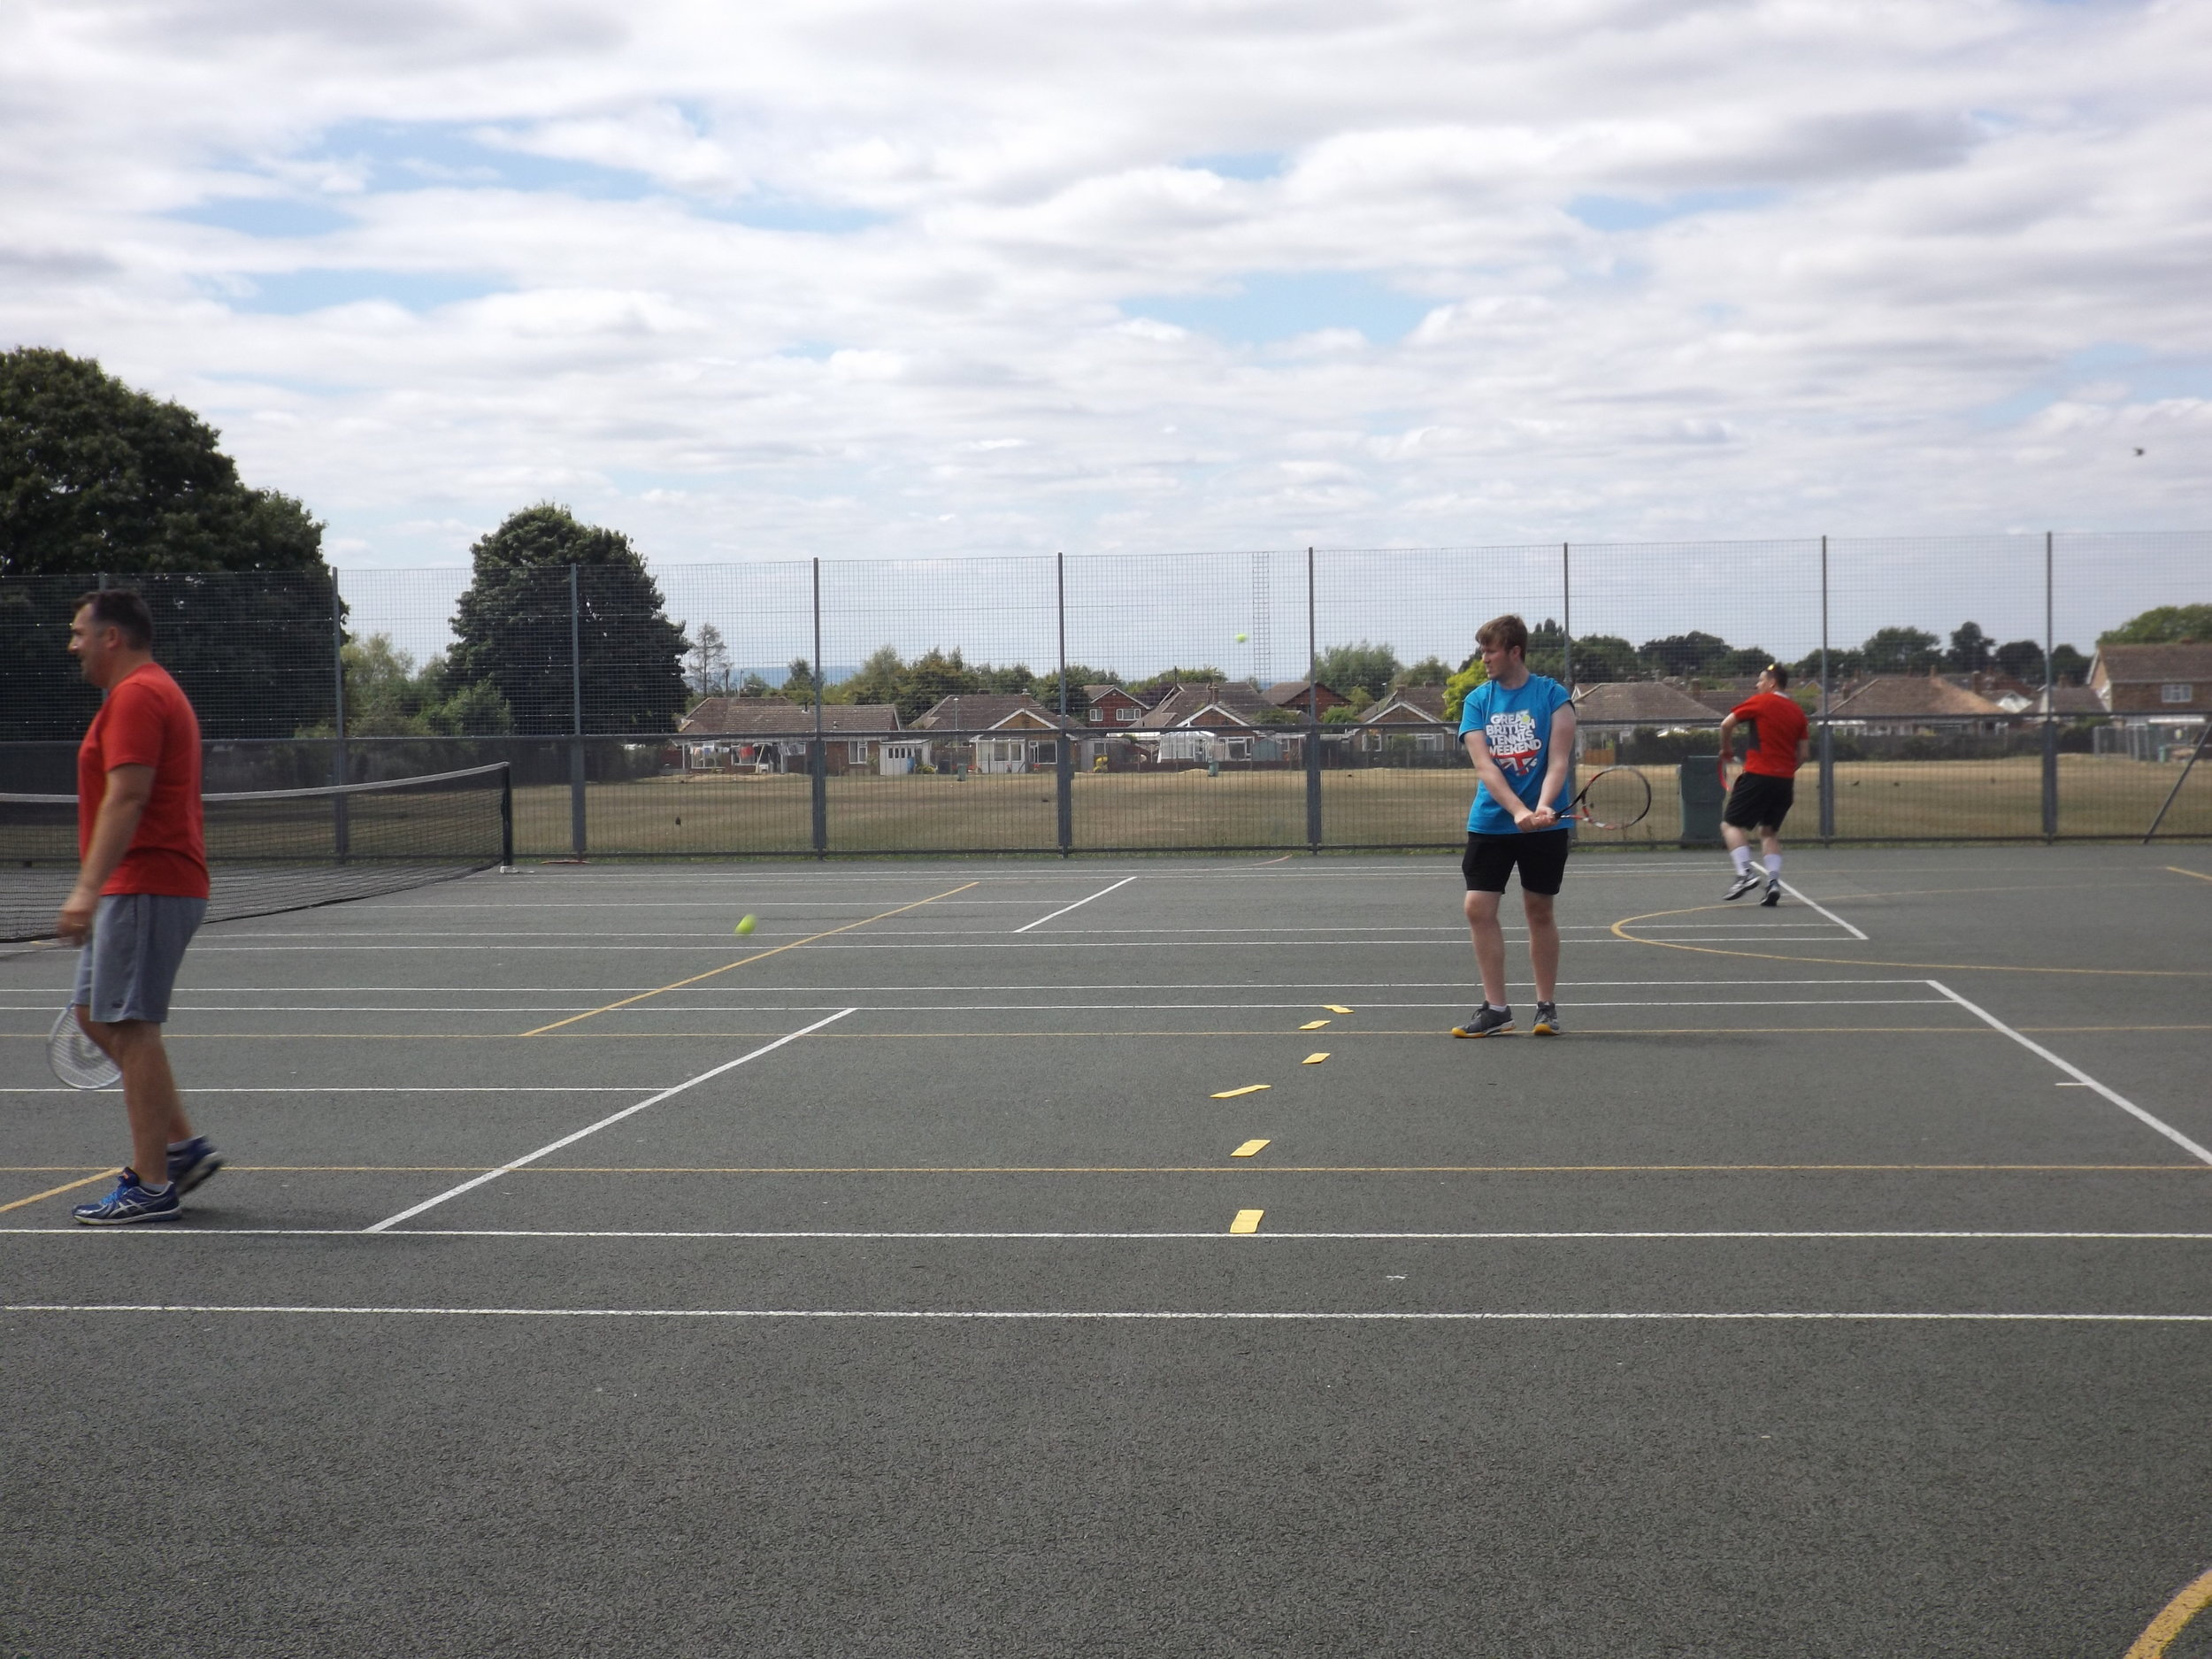 Adult Coaching - Our adult groups lessons are great for all abilities and there is something for every kind of player.